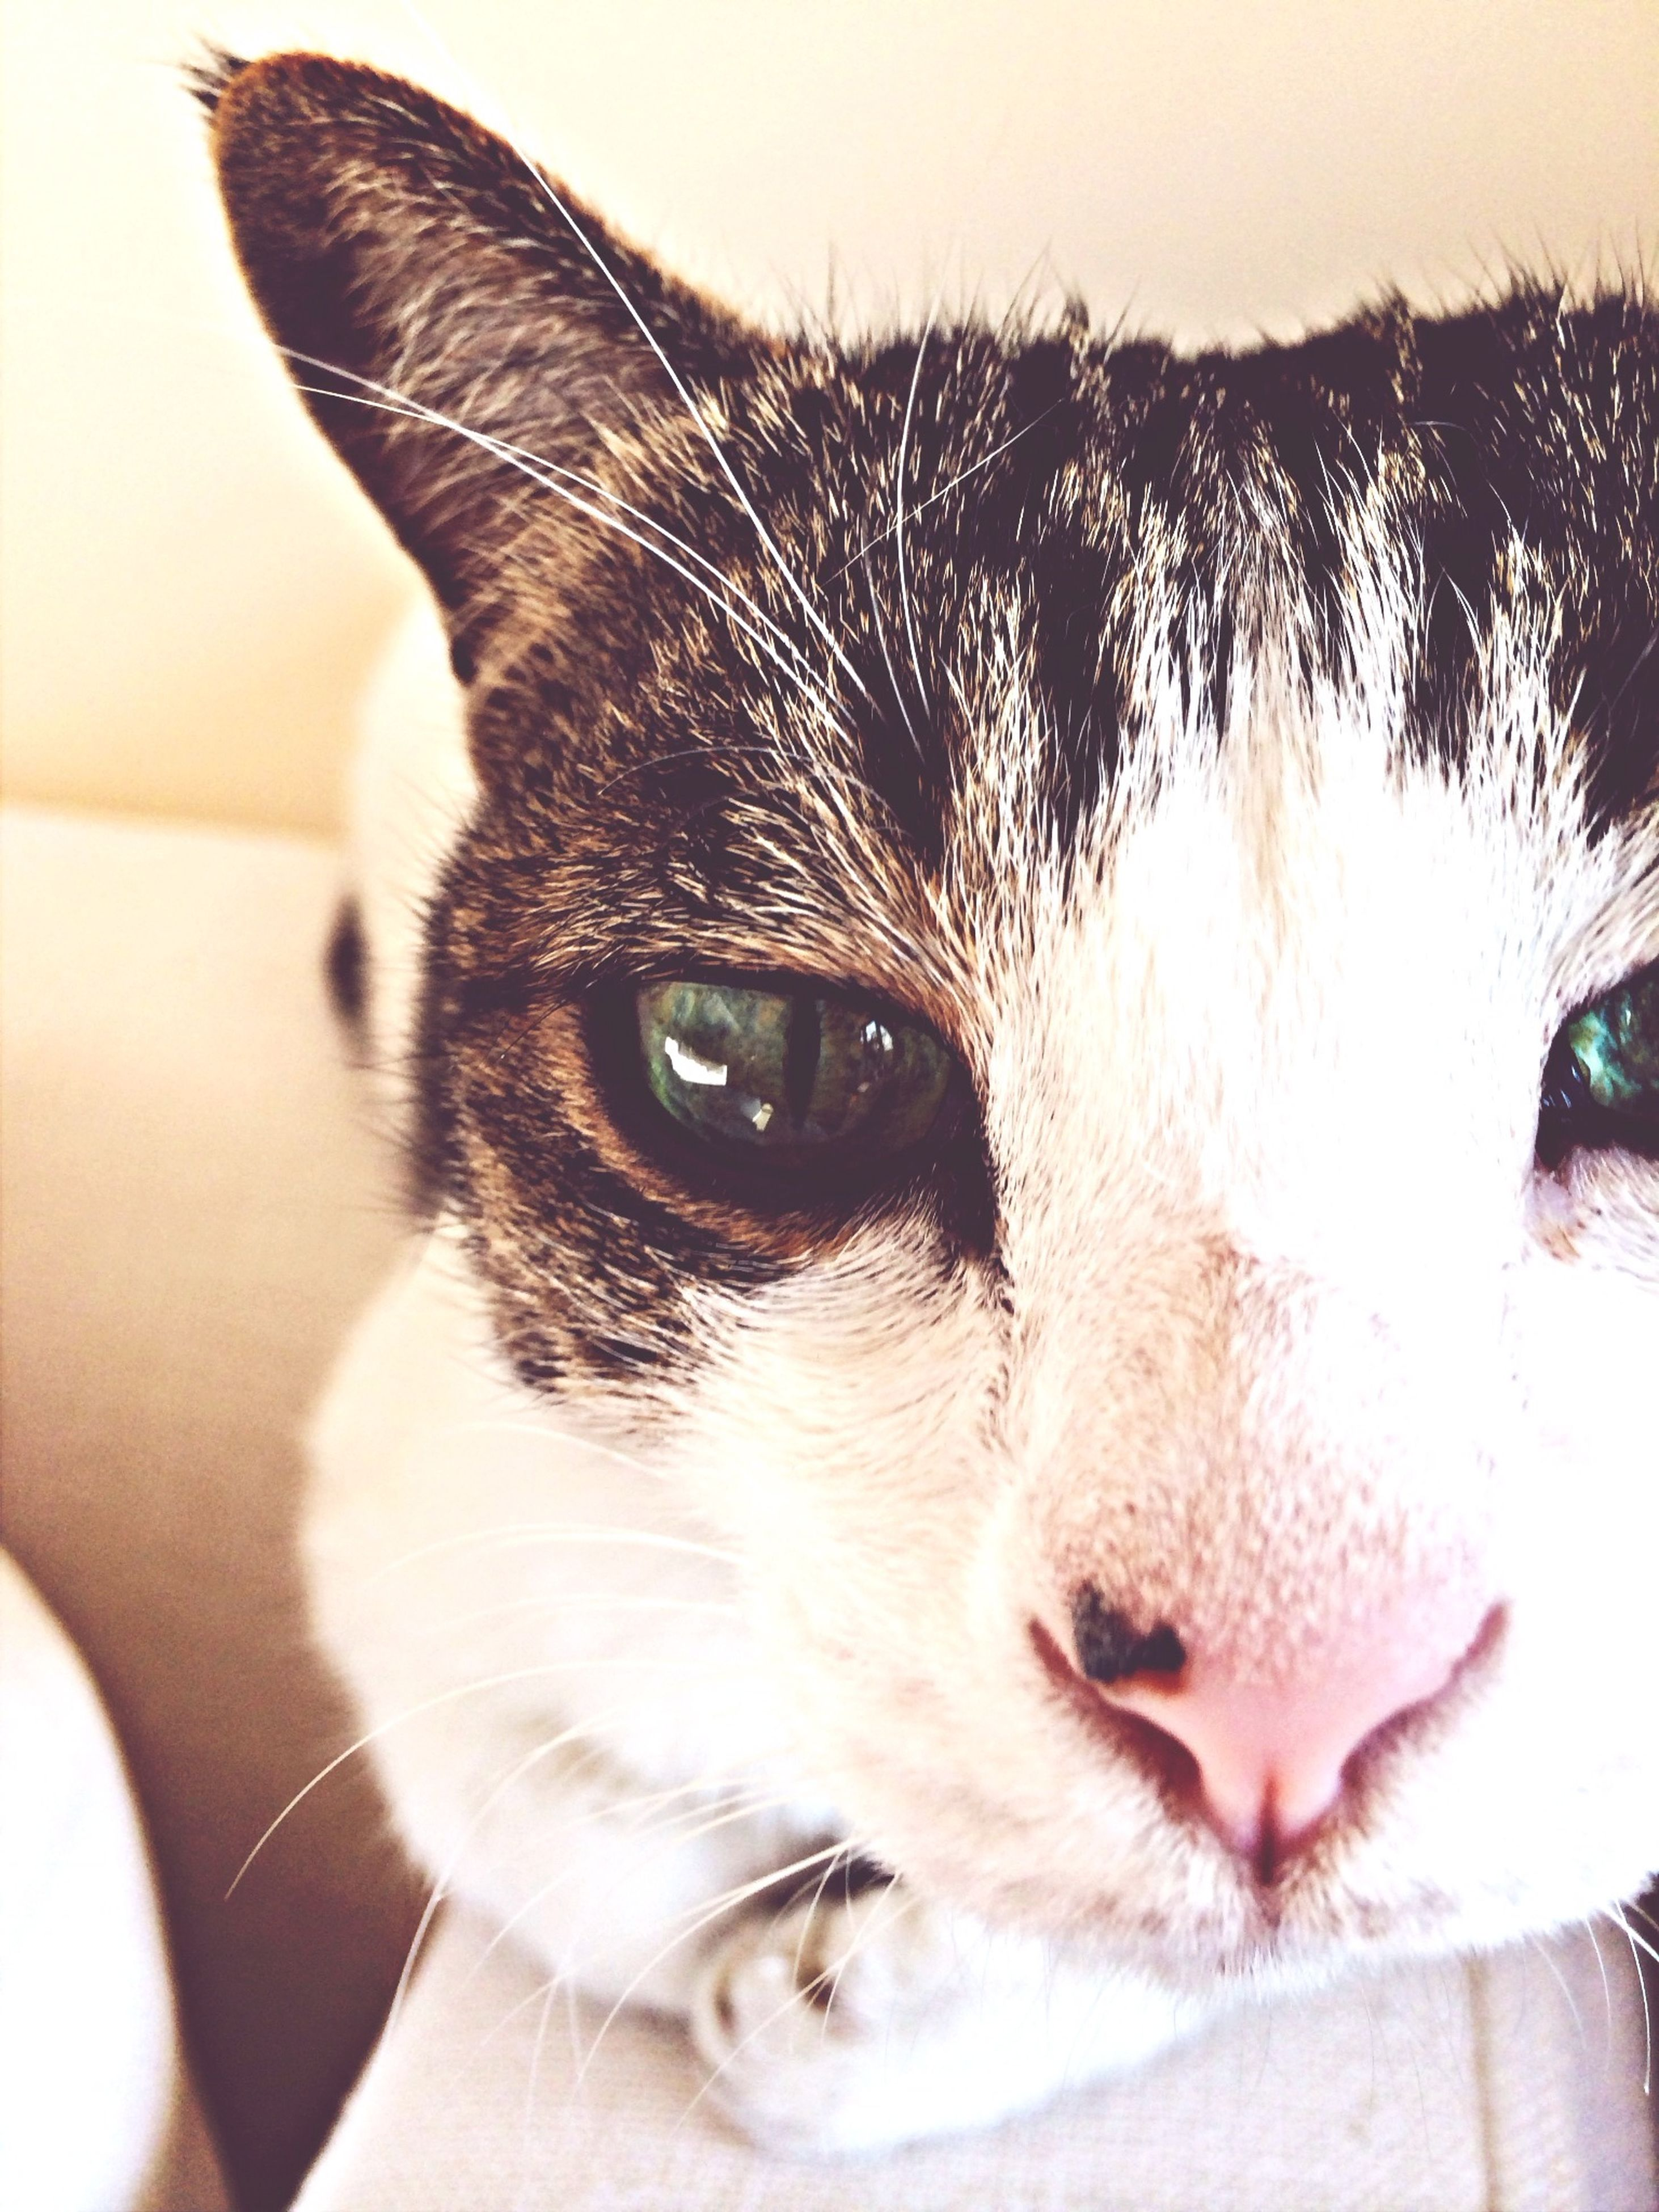 pets, domestic animals, one animal, animal themes, mammal, dog, indoors, close-up, domestic cat, animal head, looking at camera, portrait, animal body part, cat, part of, one person, whisker, home interior, focus on foreground